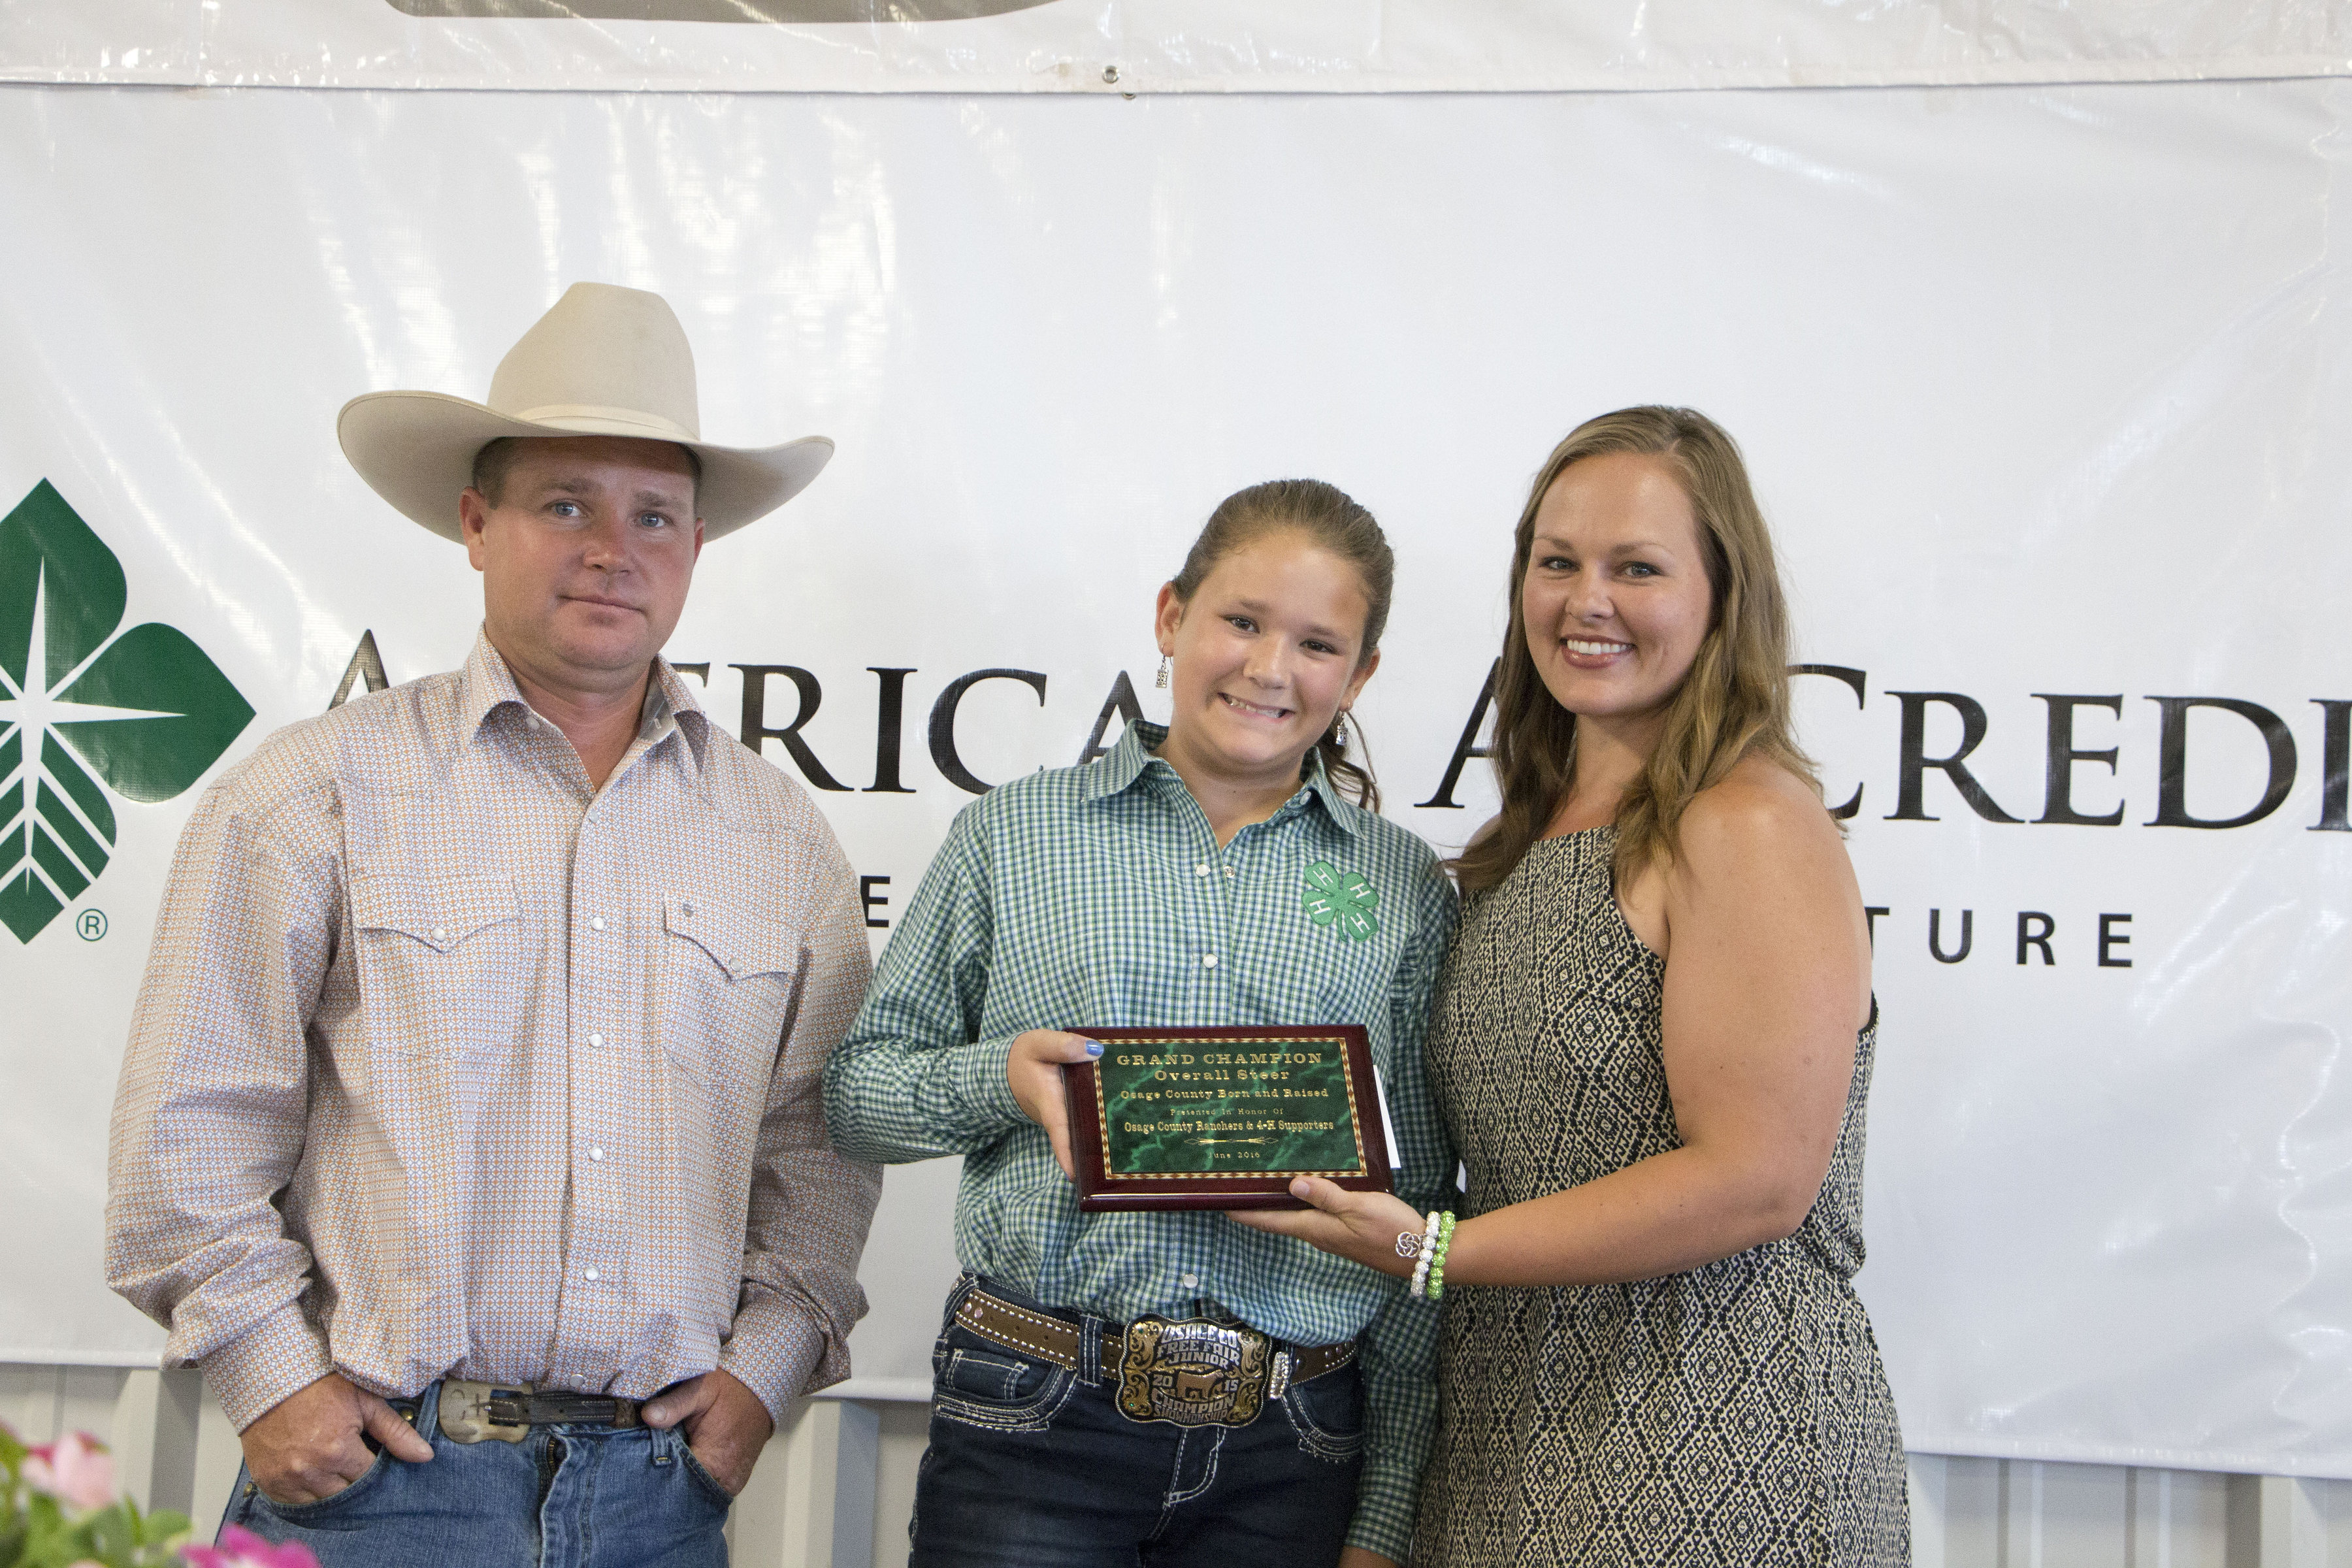 Eleven-year-old Osage wins 'County Born and Raised' at Cattleman Hall of Fame Luncheon